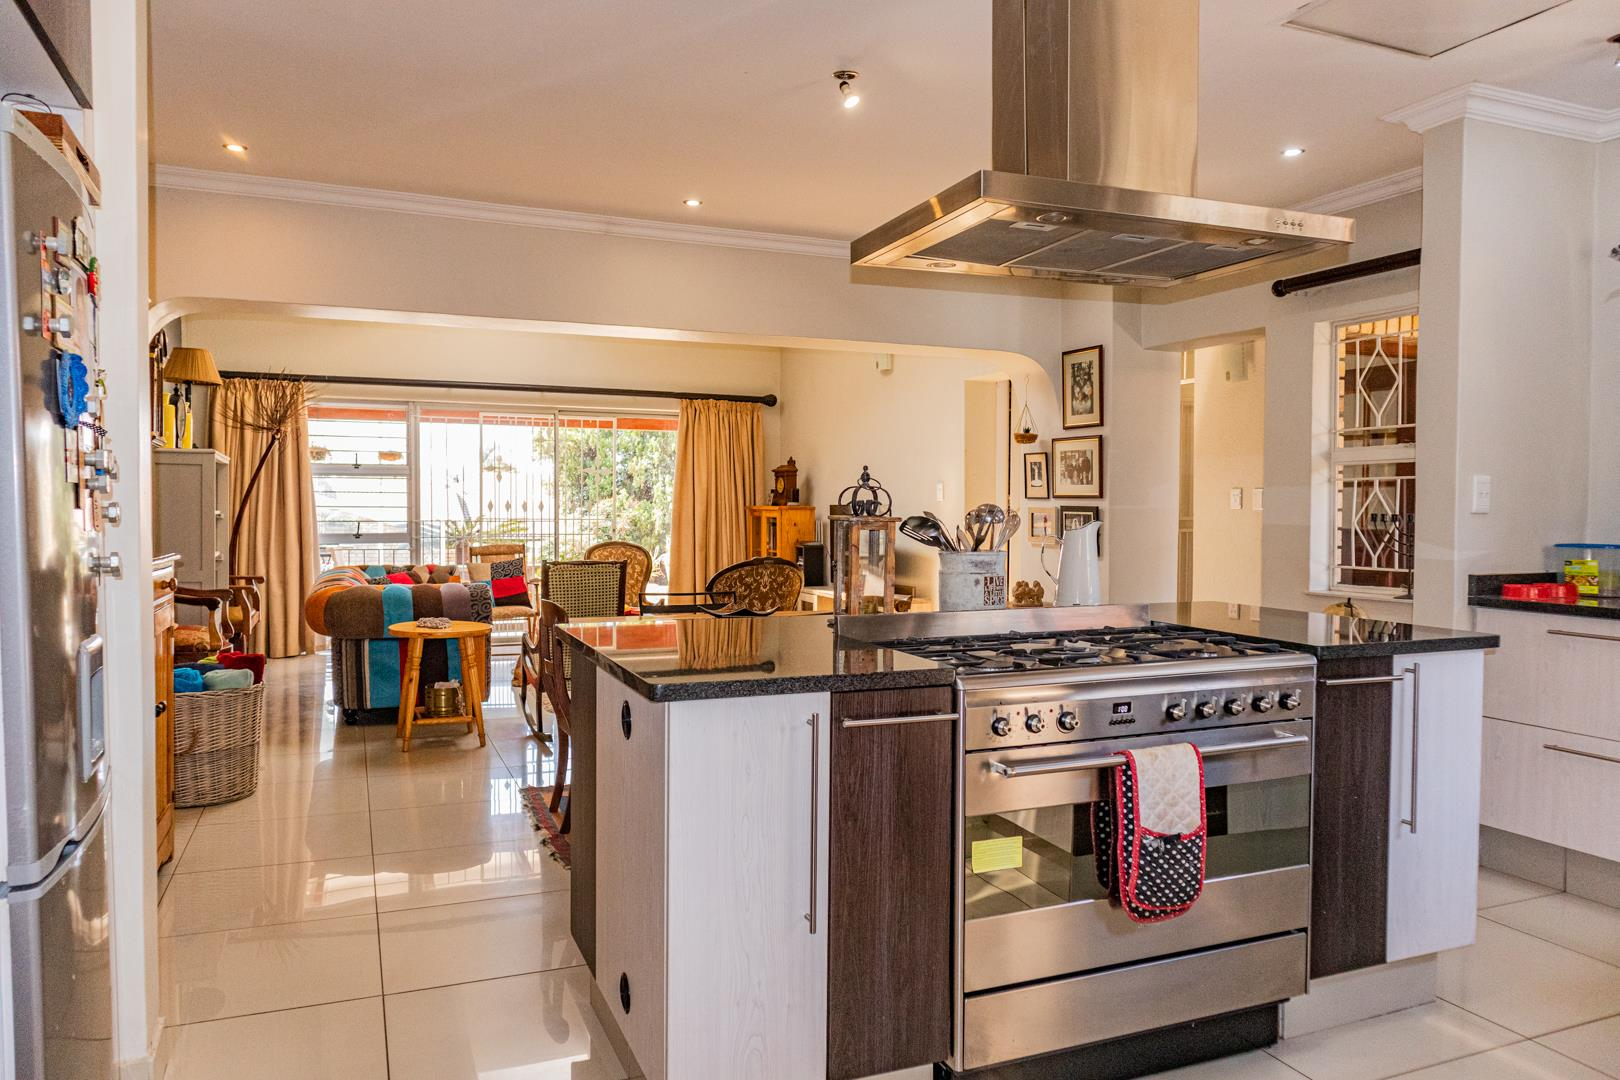 3 Bedroom Townhouse For Sale in Fairland